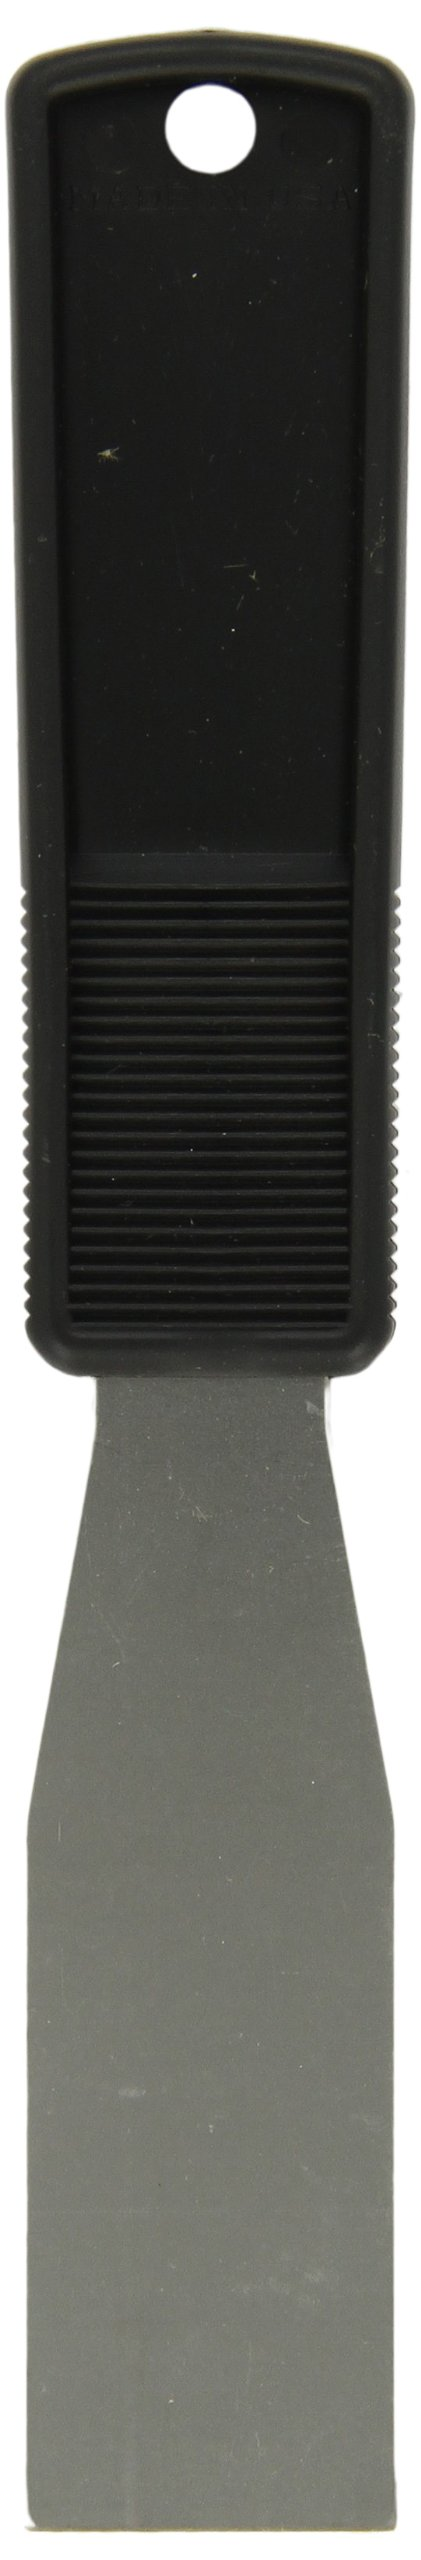 Impact 3200 Stainless Steel Putty Knife with Polypropylene Handle, 8'' Length x 1-1/4'' Width, Black (Case of 100)